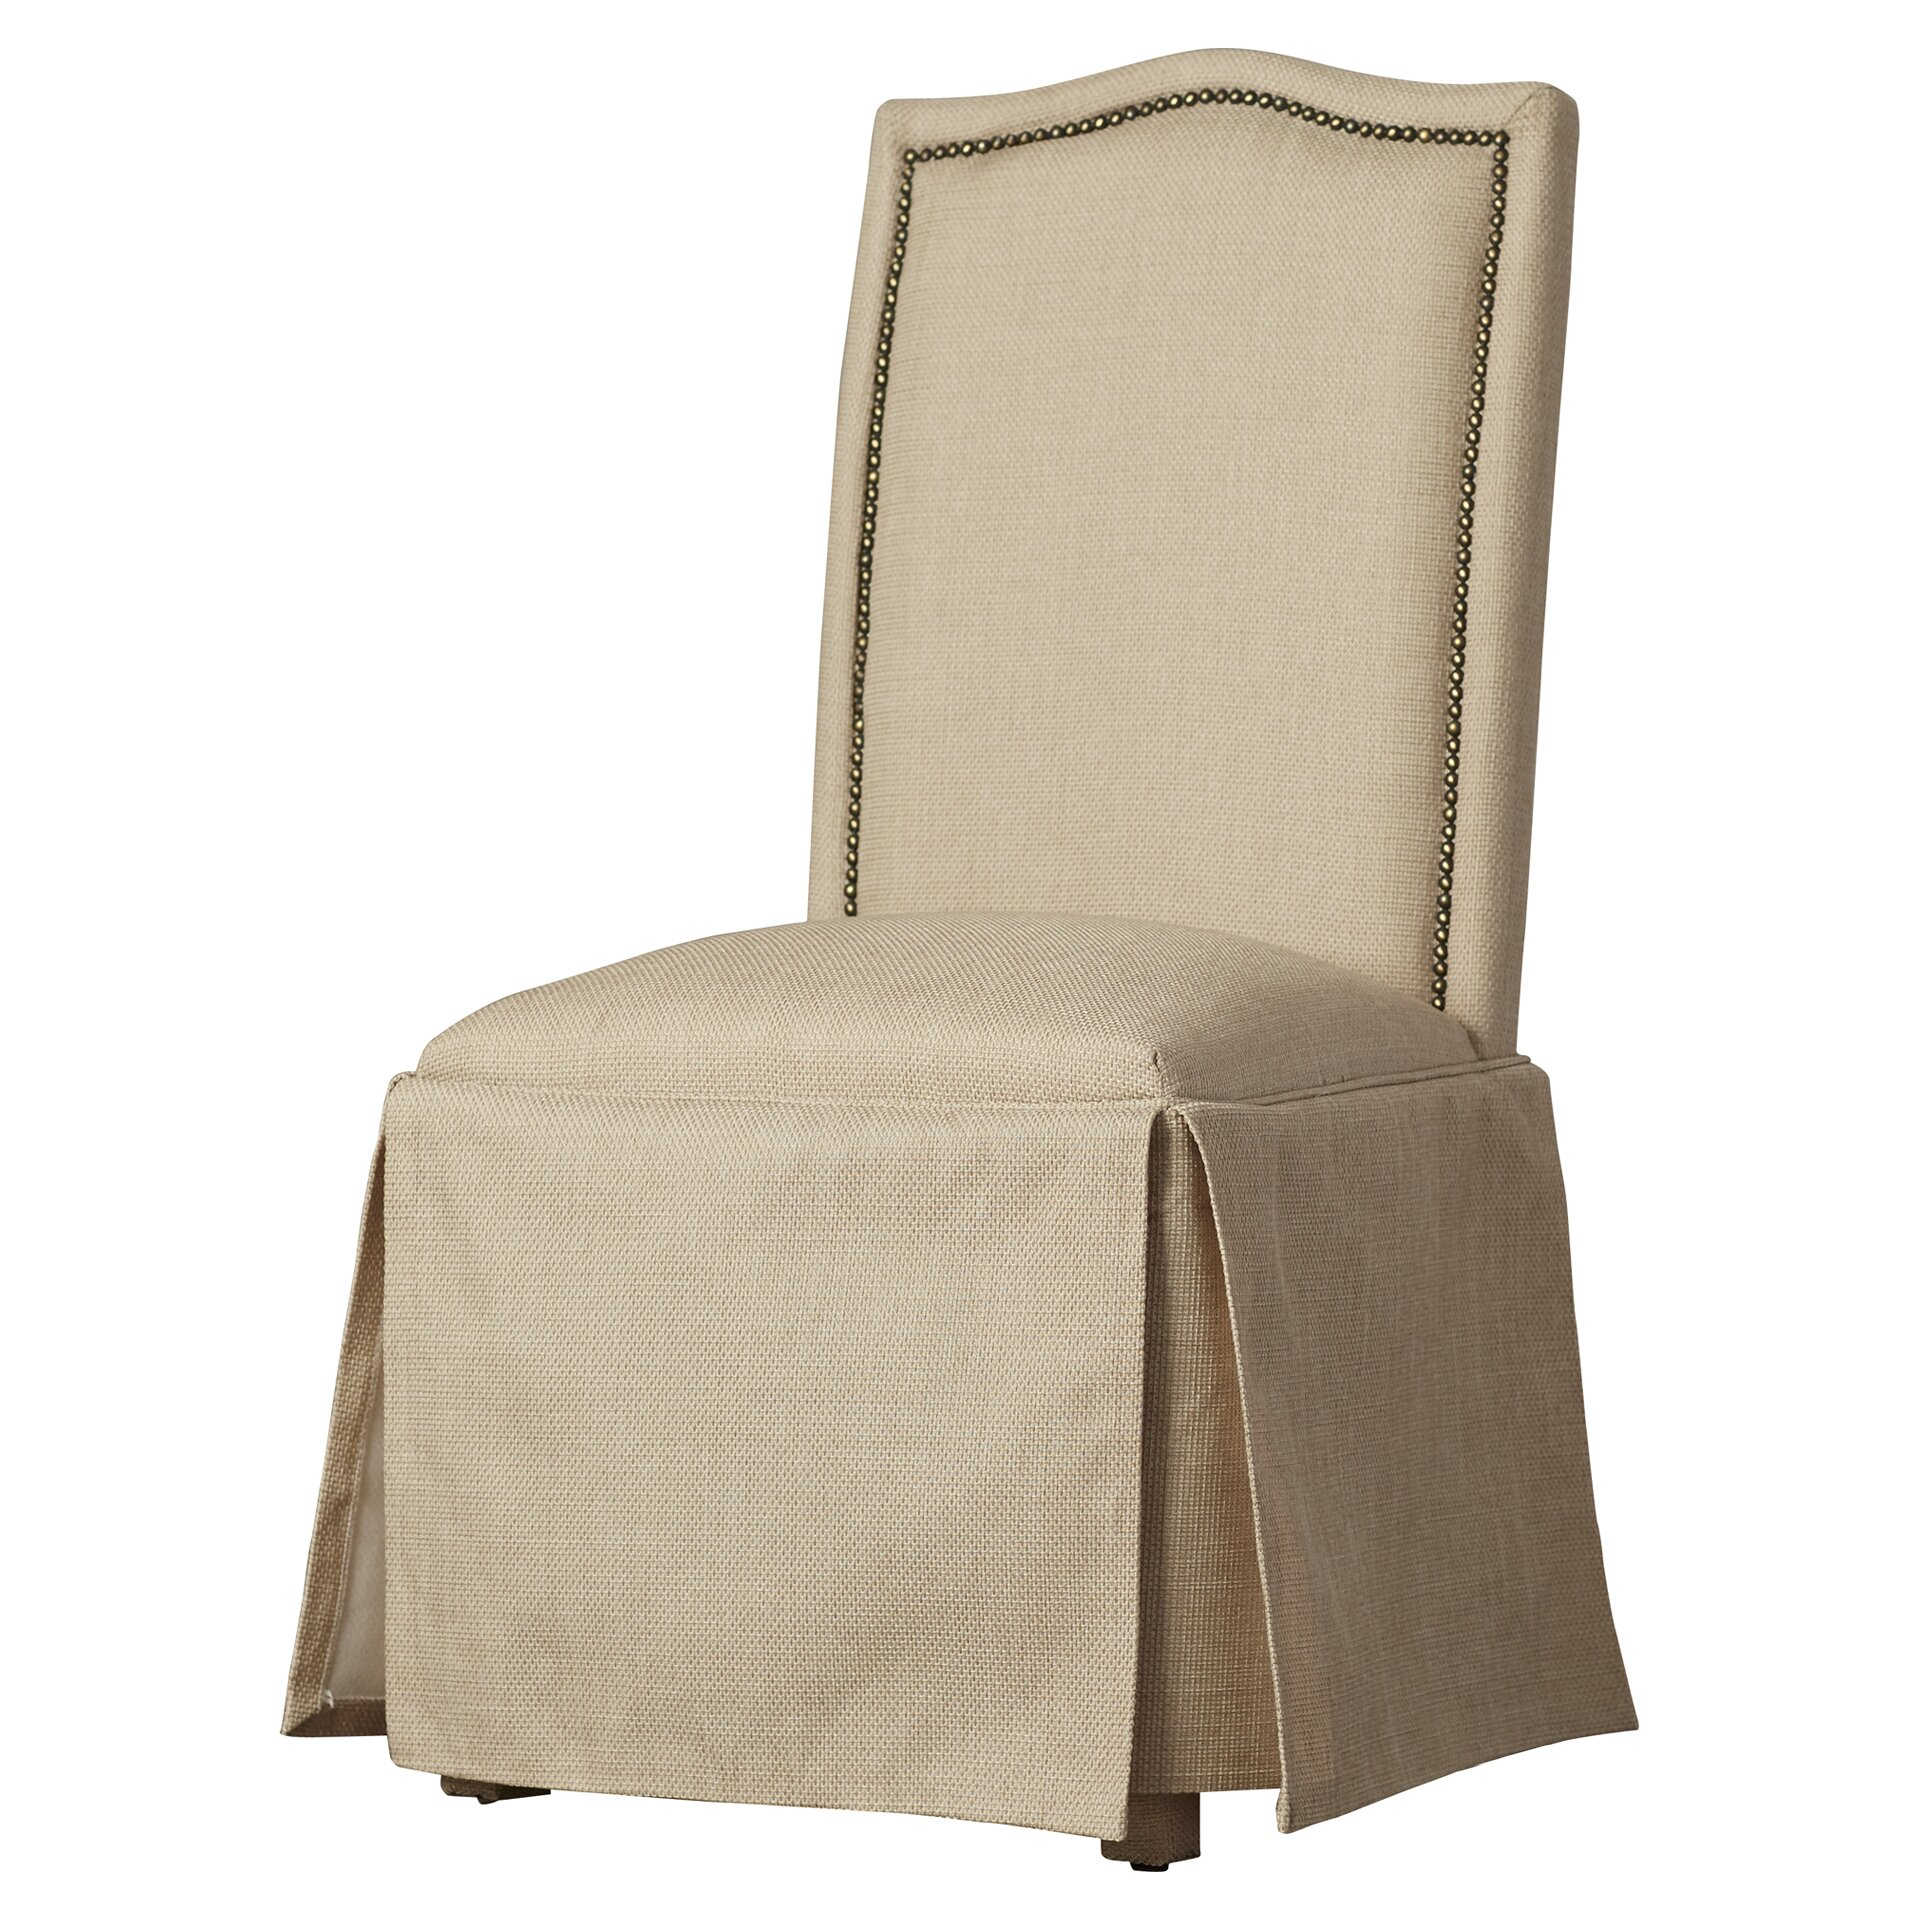 Alcott Hill Fredericksburg Skirted Parson Chair & Reviews | Wayfair